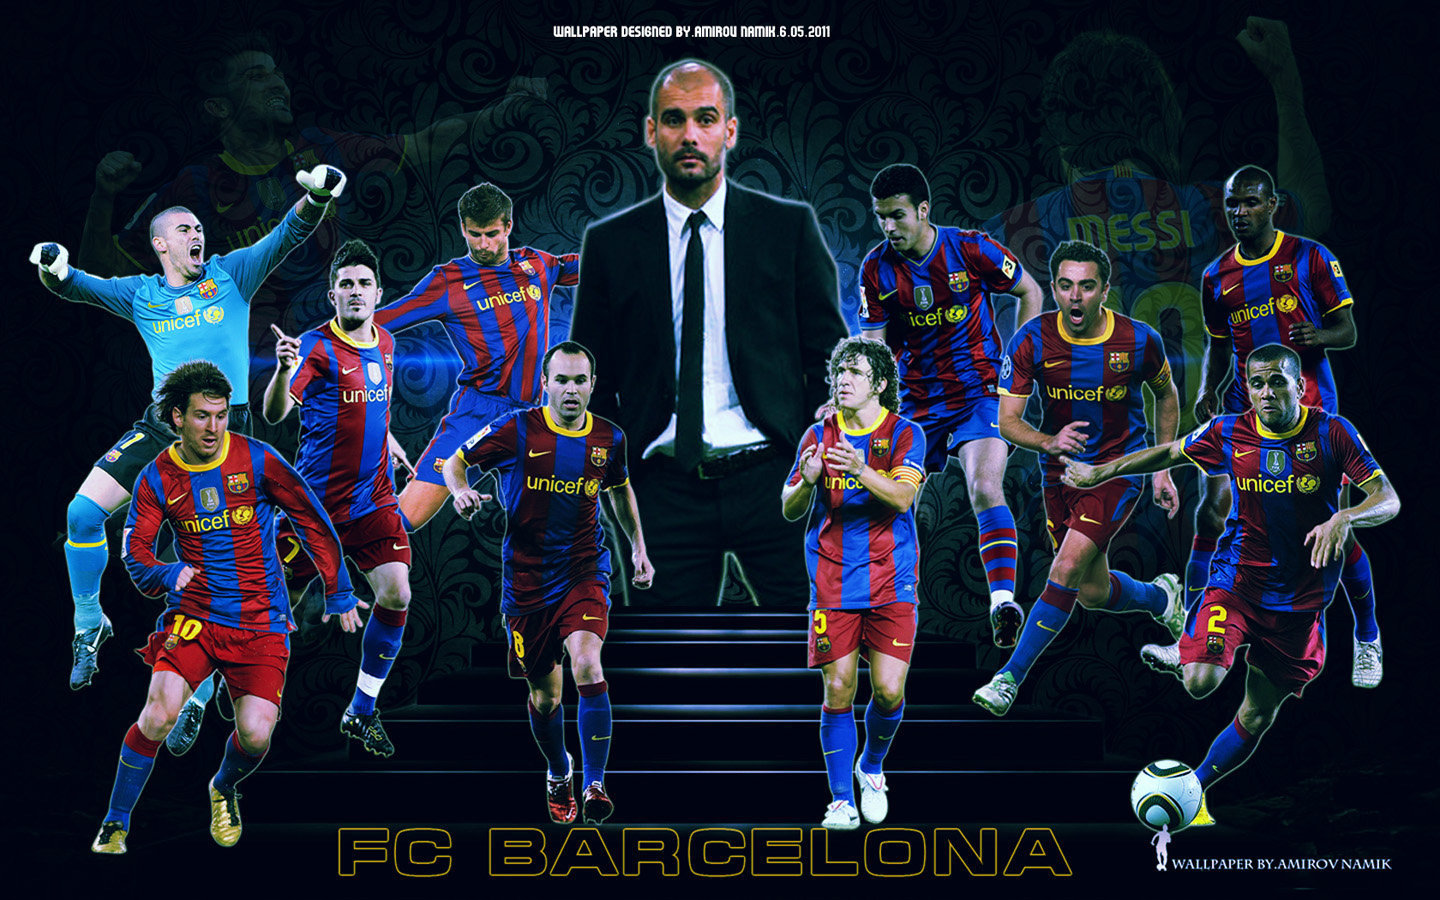 FC Barcelona Players 2010/11